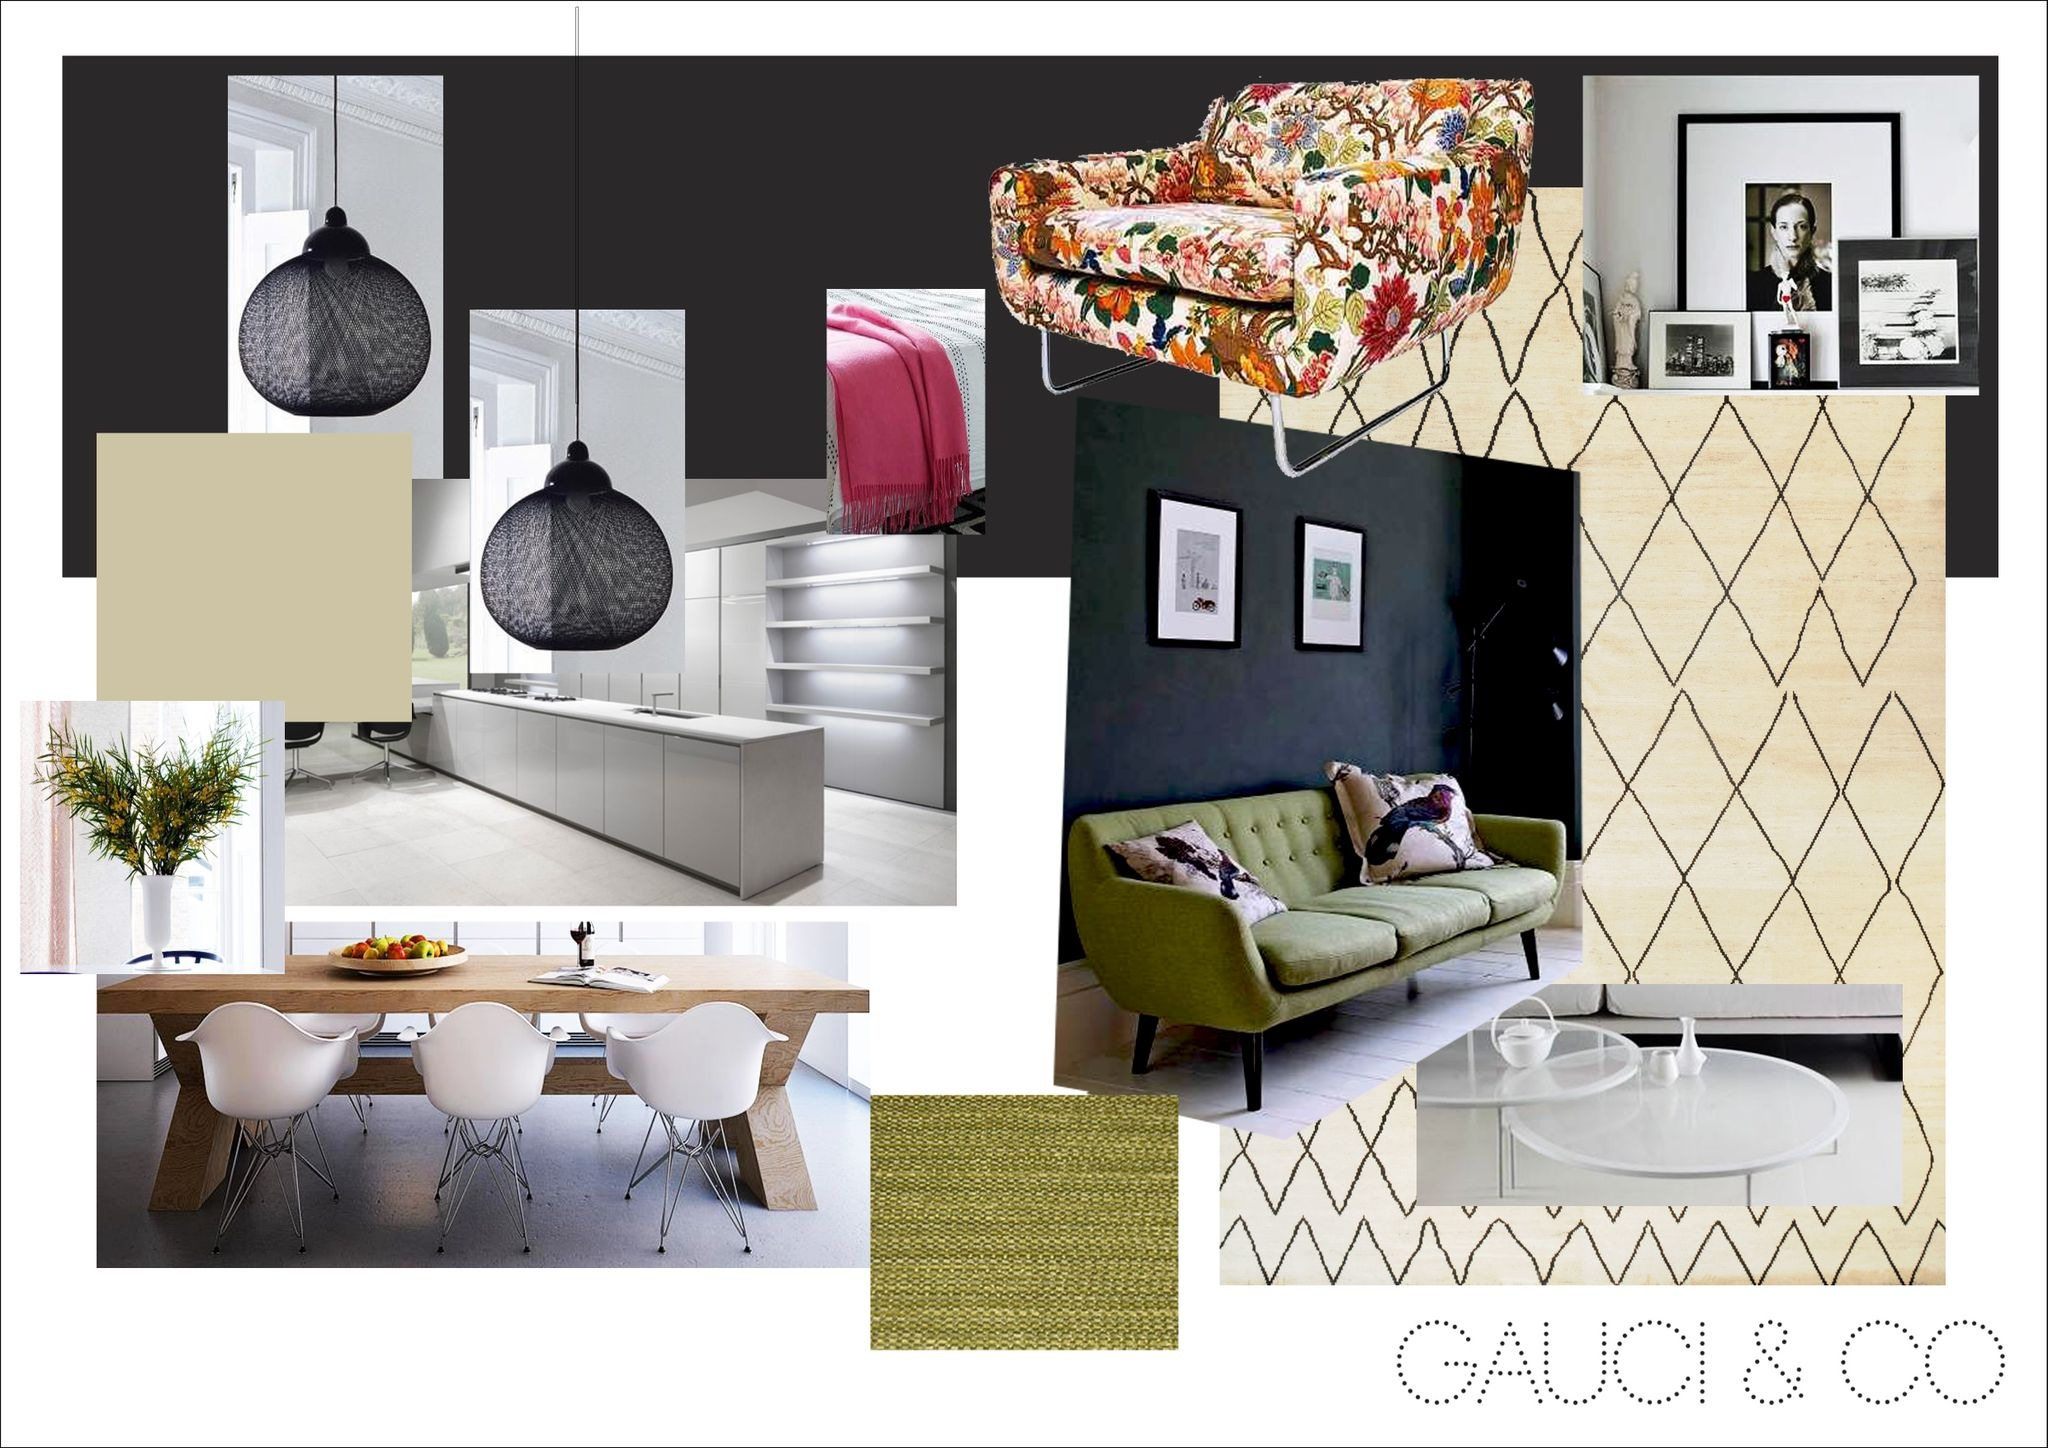 Visualize Design With Mood Board And Gallery View Interior Design Mood Board Tools